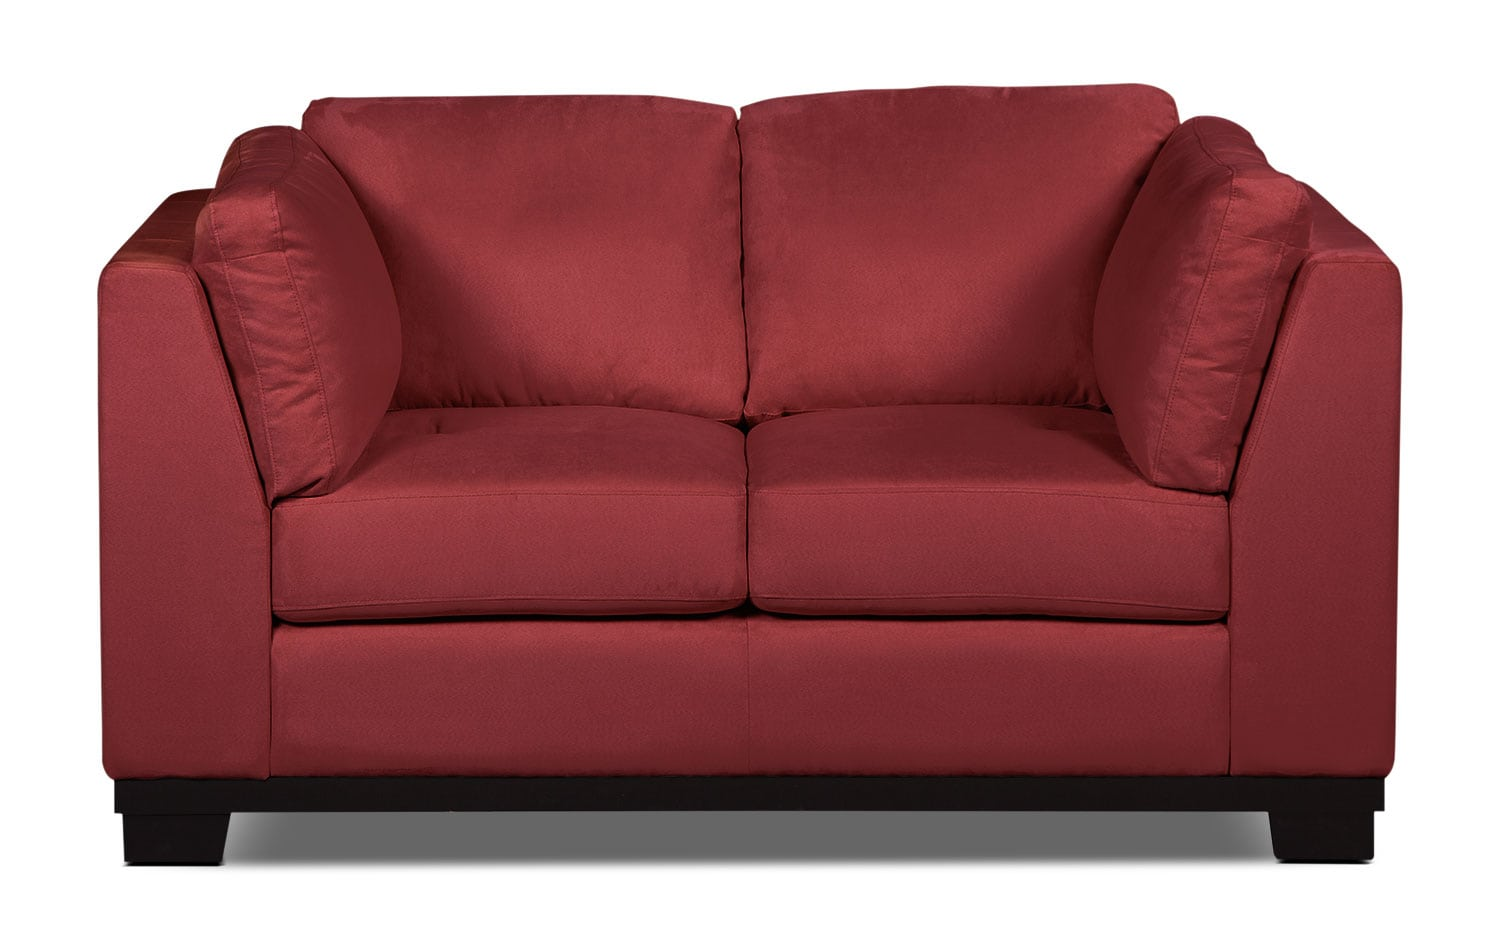 Oakdale Microsuede Loveseat Red The Brick